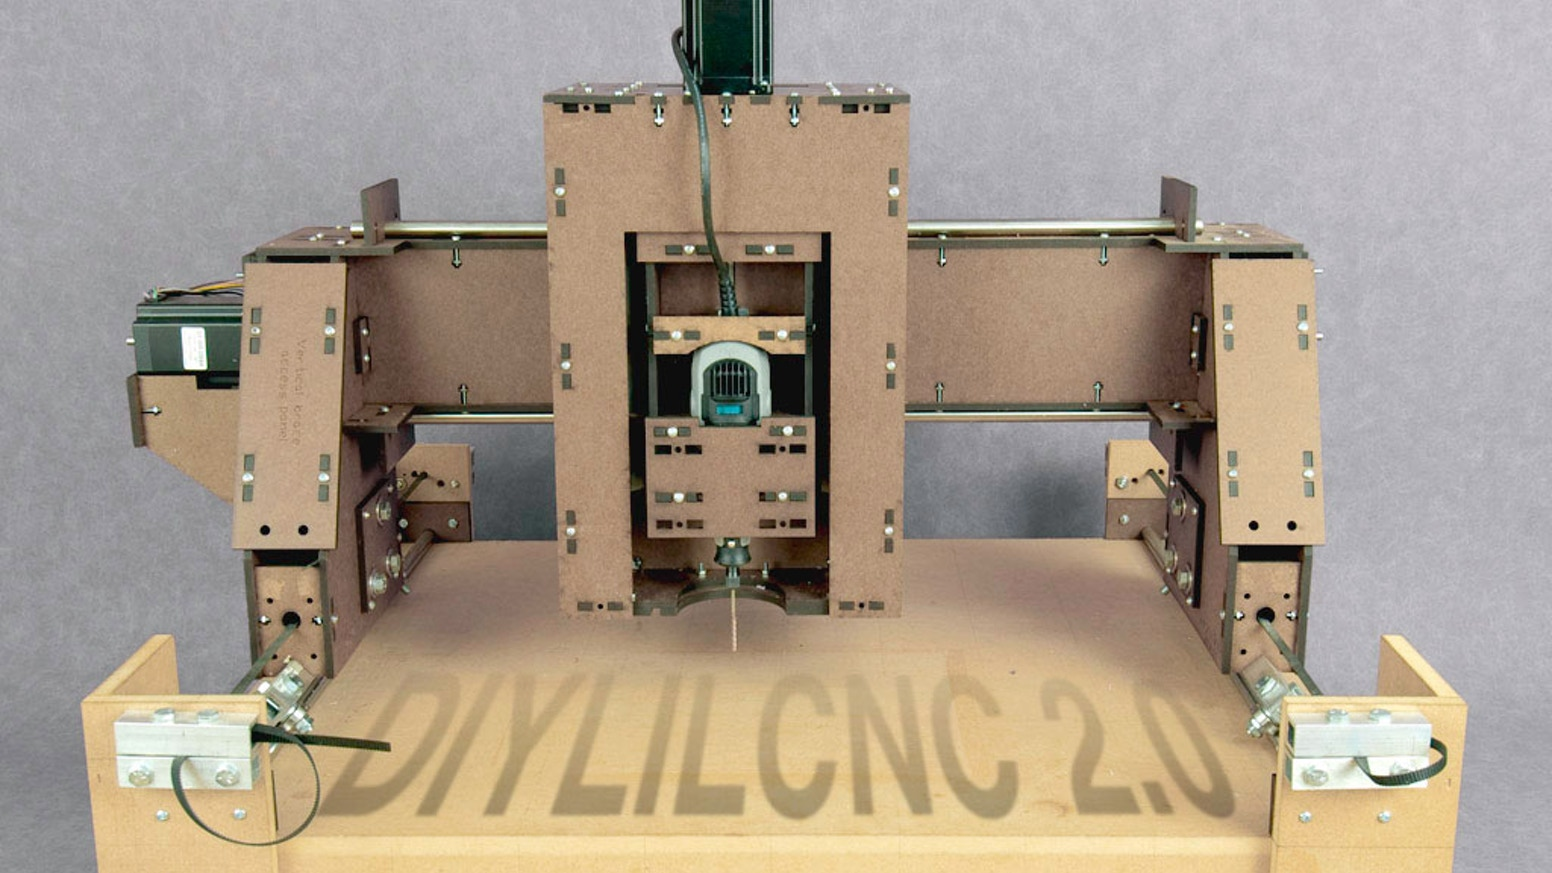 DIYLILCNC 2 0 - Open-source plans for a low-cost CNC mill